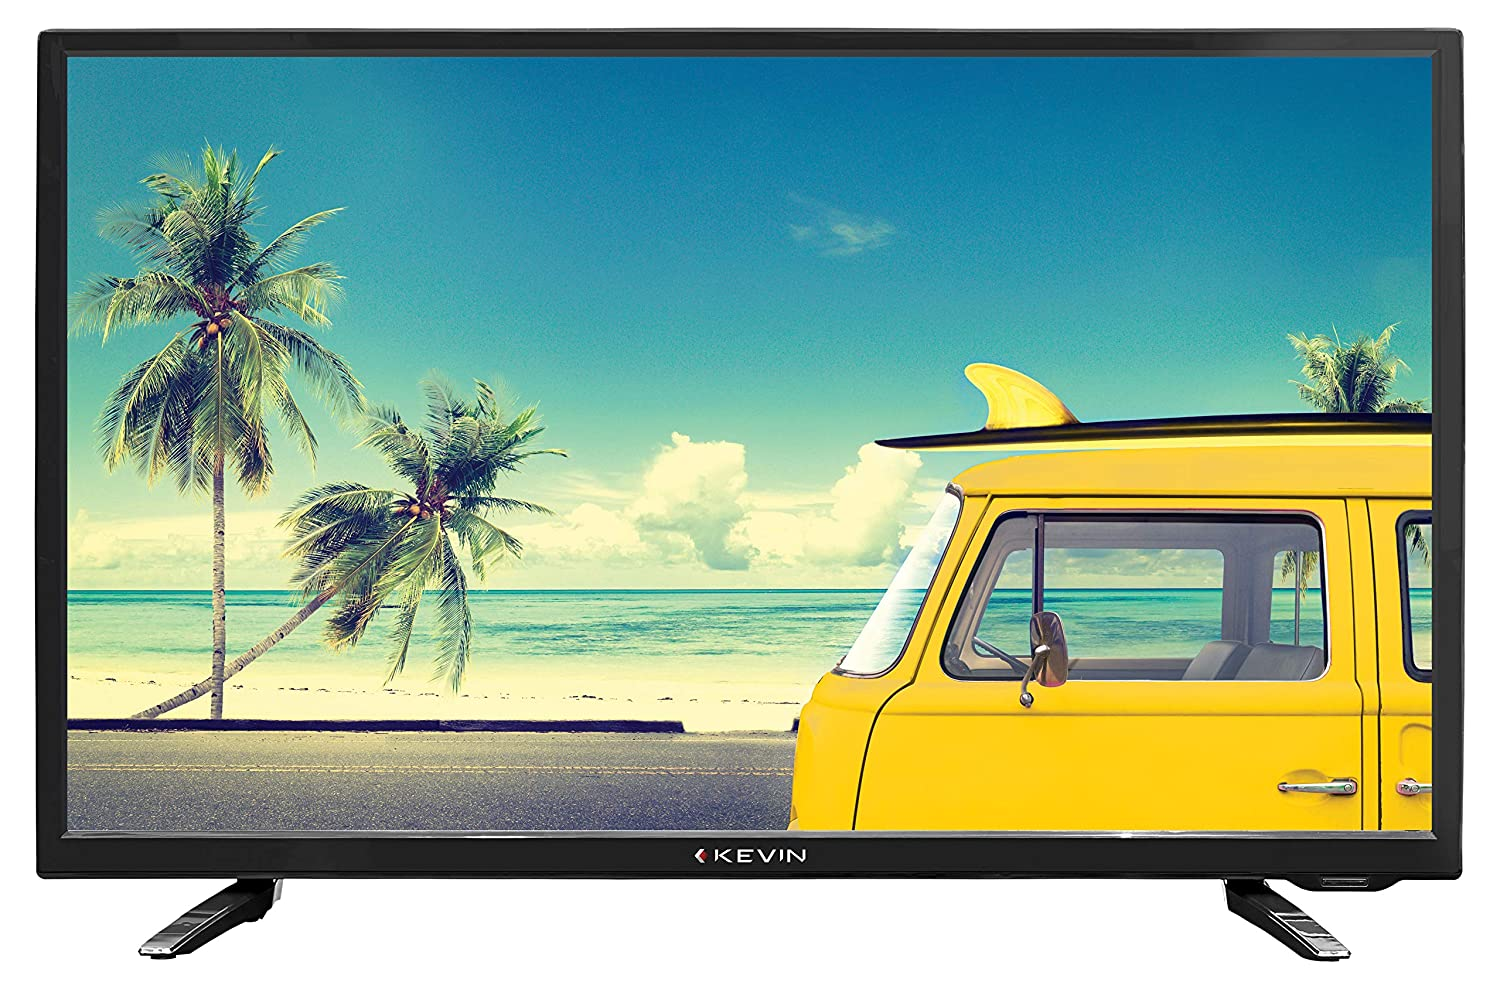 Kevin 32 Inches HD Ready LED TV @ Rs.6749 (HDFC Cards) Rs.7499 For Others